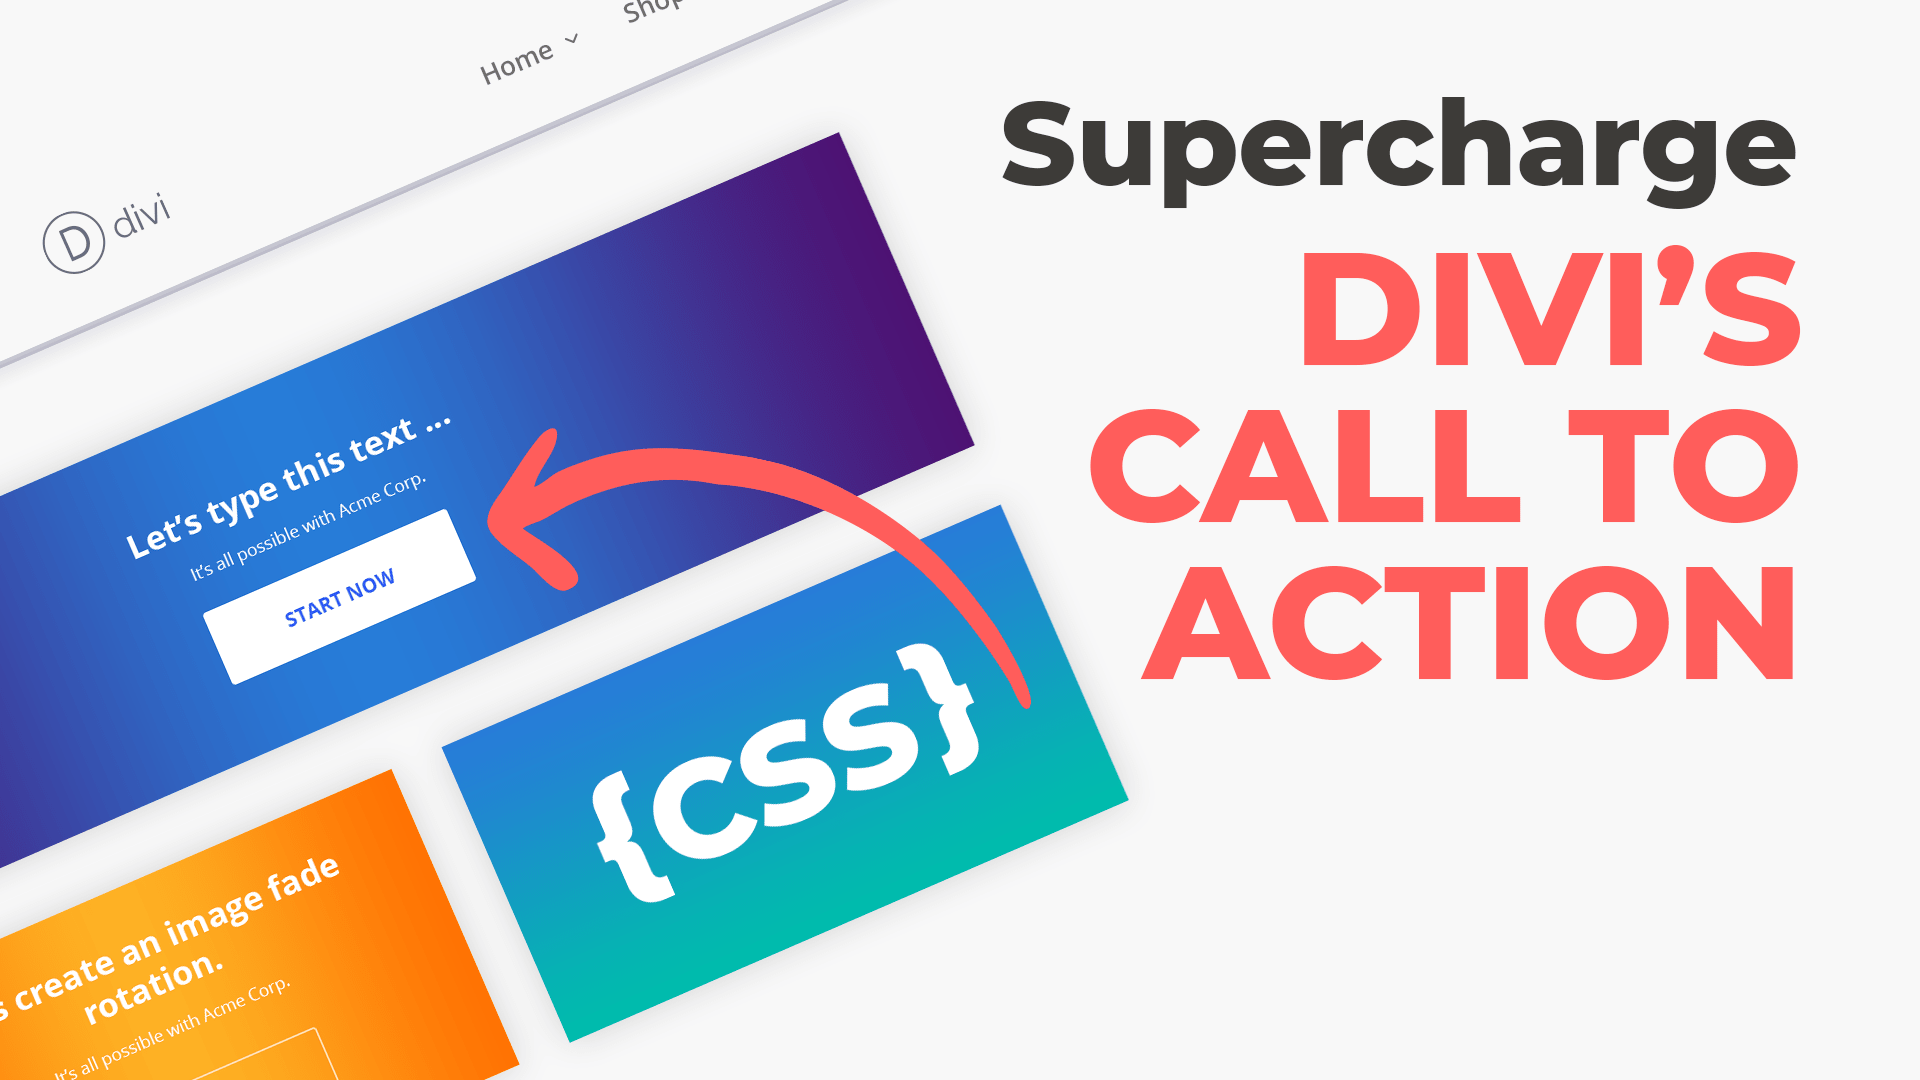 Supercharge Divi's Call to Action Module Using CSS